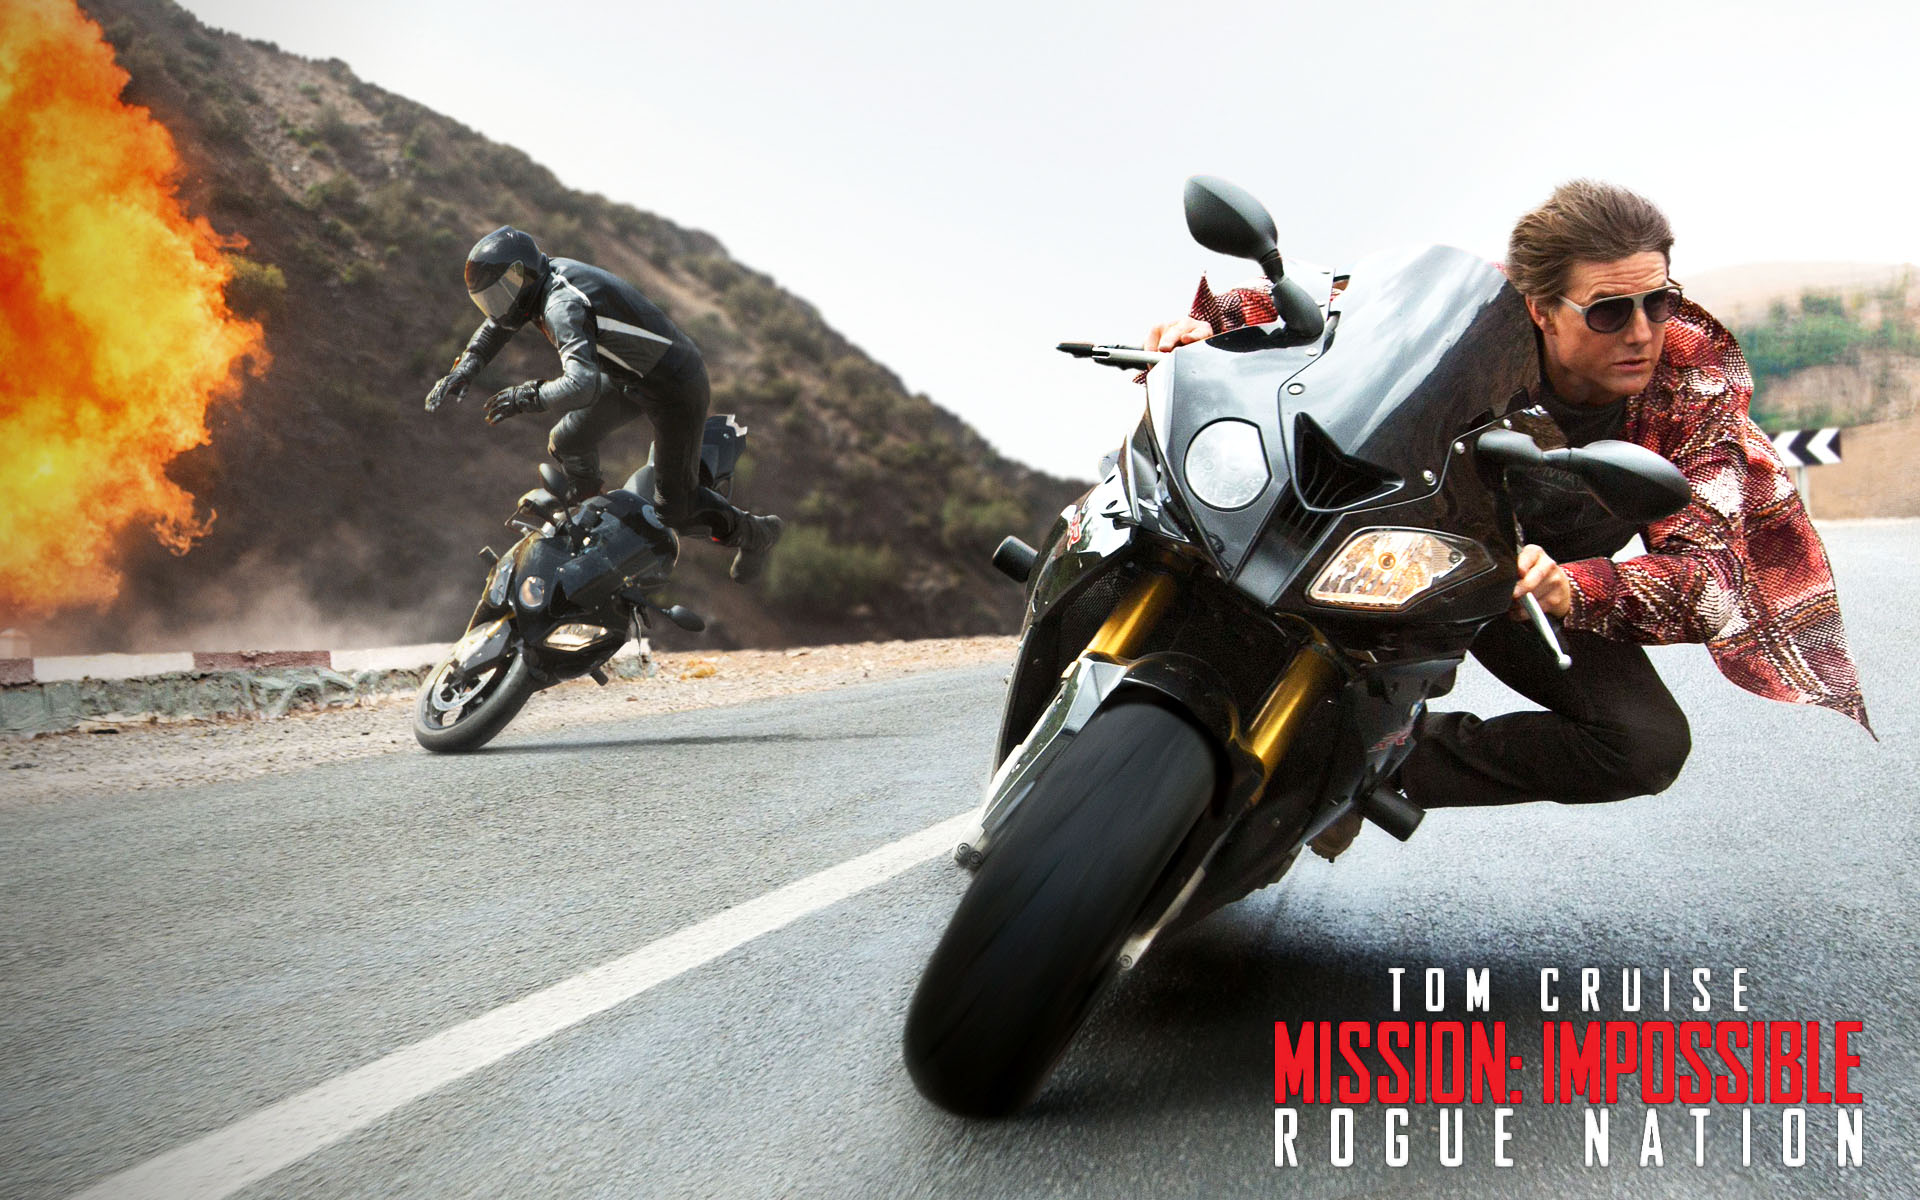 Tom Cruise Mission Impossible Rogue Nation Sunglasses Picture Motorcycle